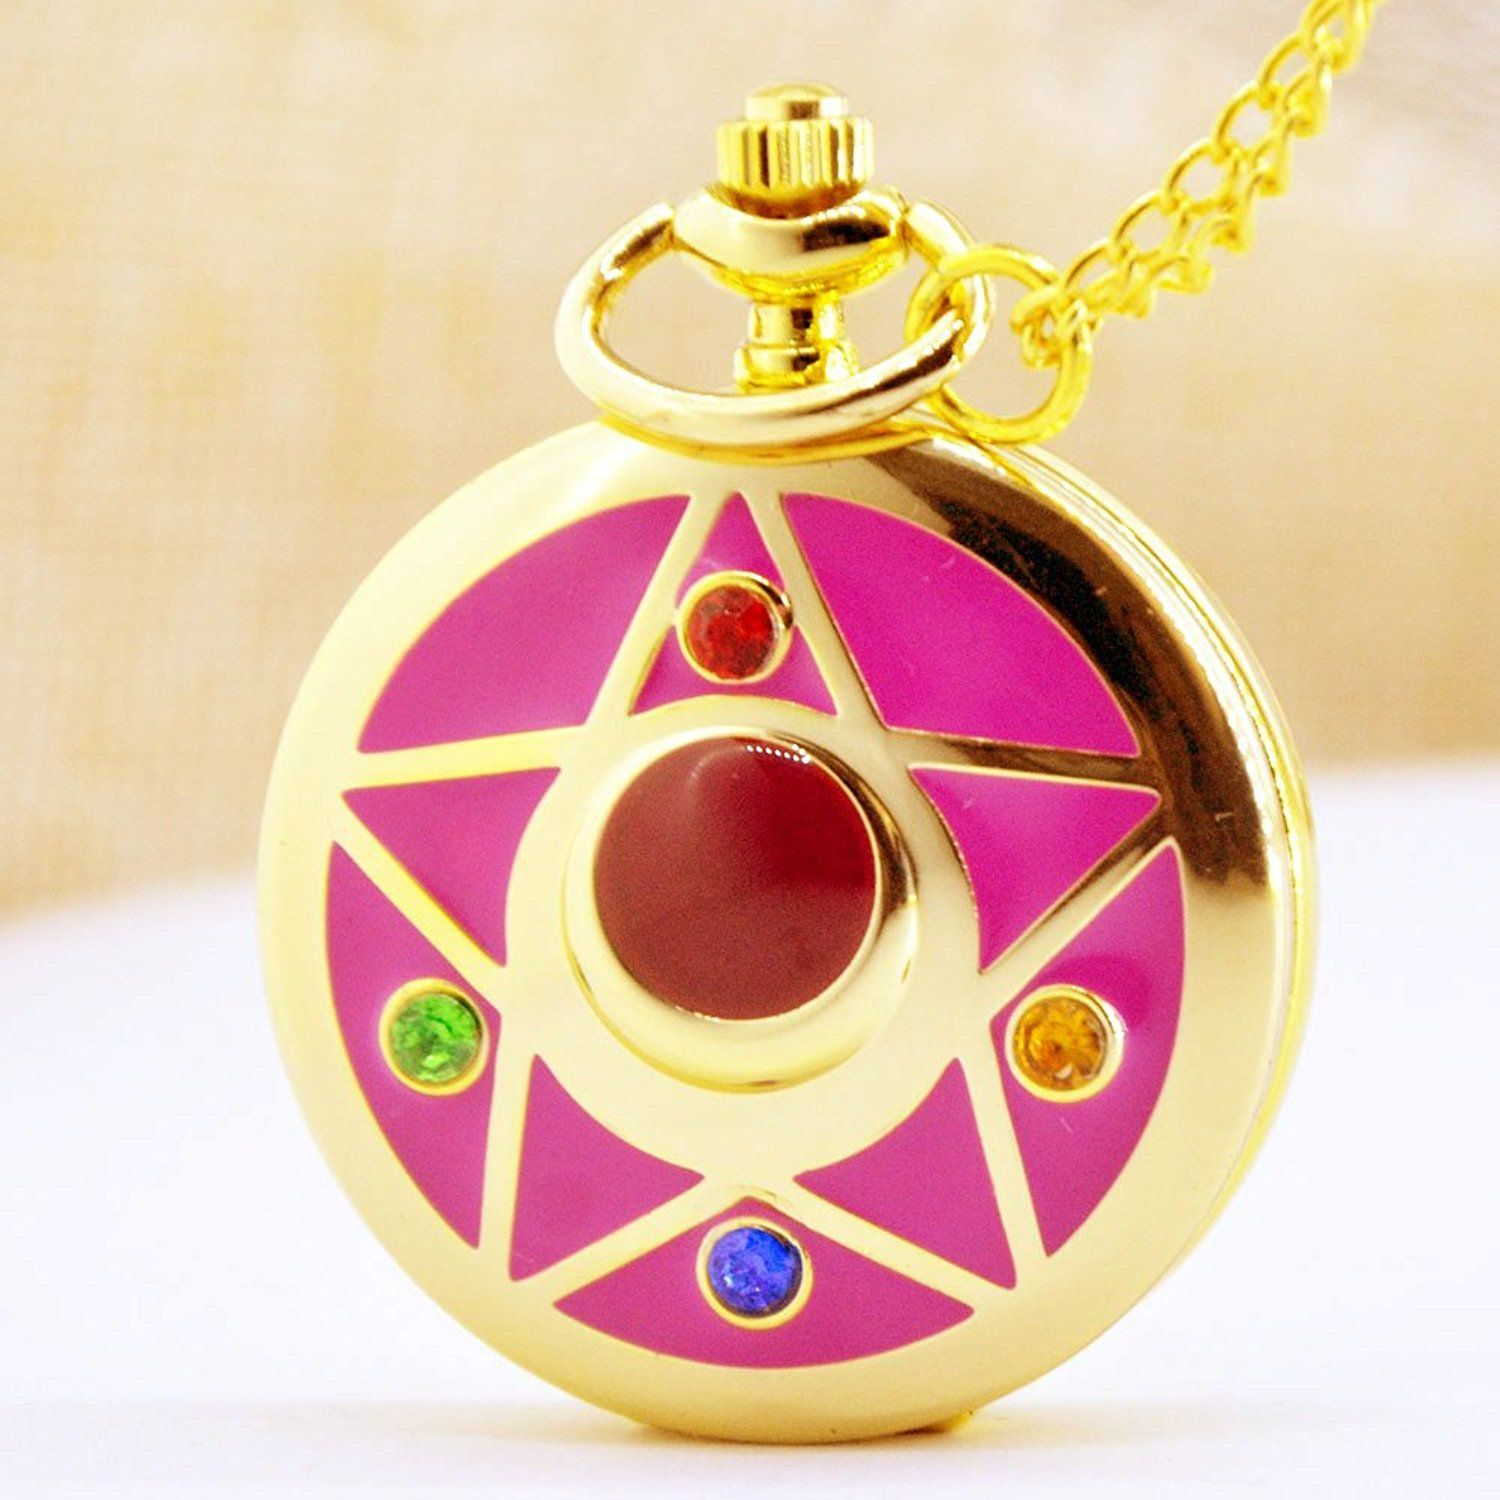 Amazon.com: Golden Fashion Anime Cosplay Sailor Moon Pocket watch with Chain Necklace Pendant Womens Girls: Watches